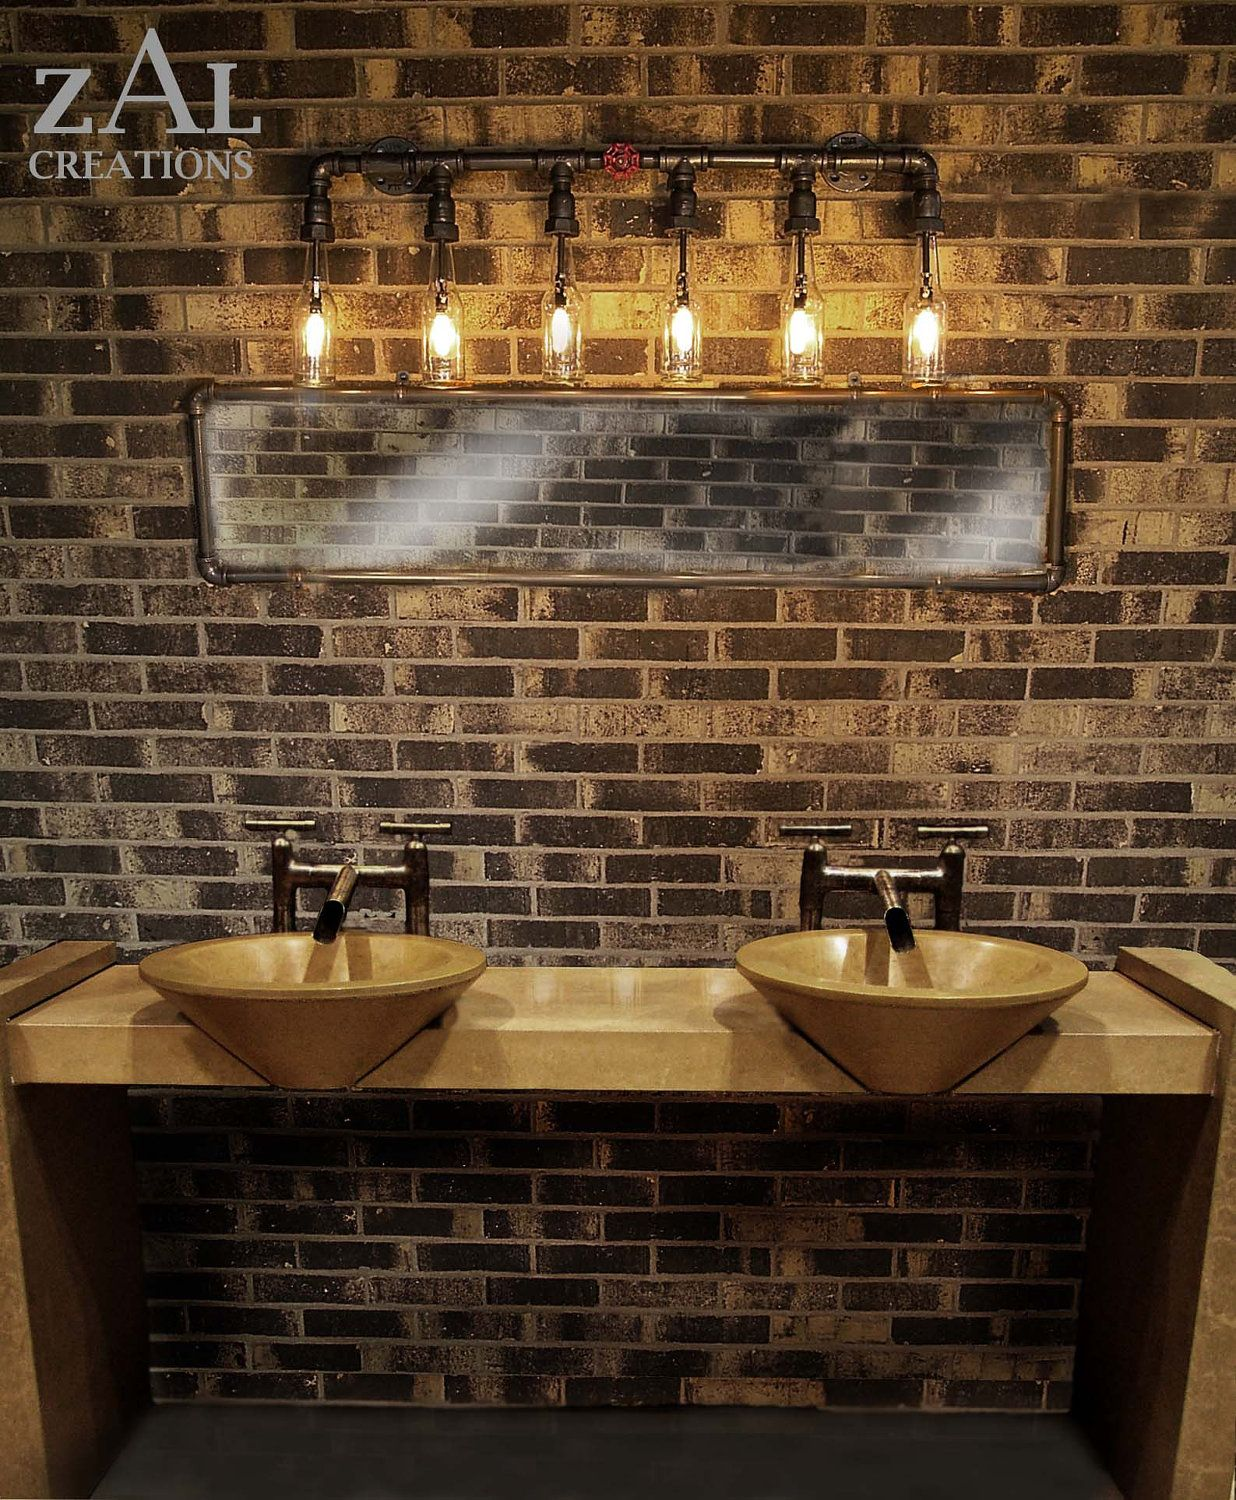 Rustic bathroom lighting - Vanity Light Wall Light Beer Bottles Plumbing Pipe Bathroom Vanity Lighting Fixture